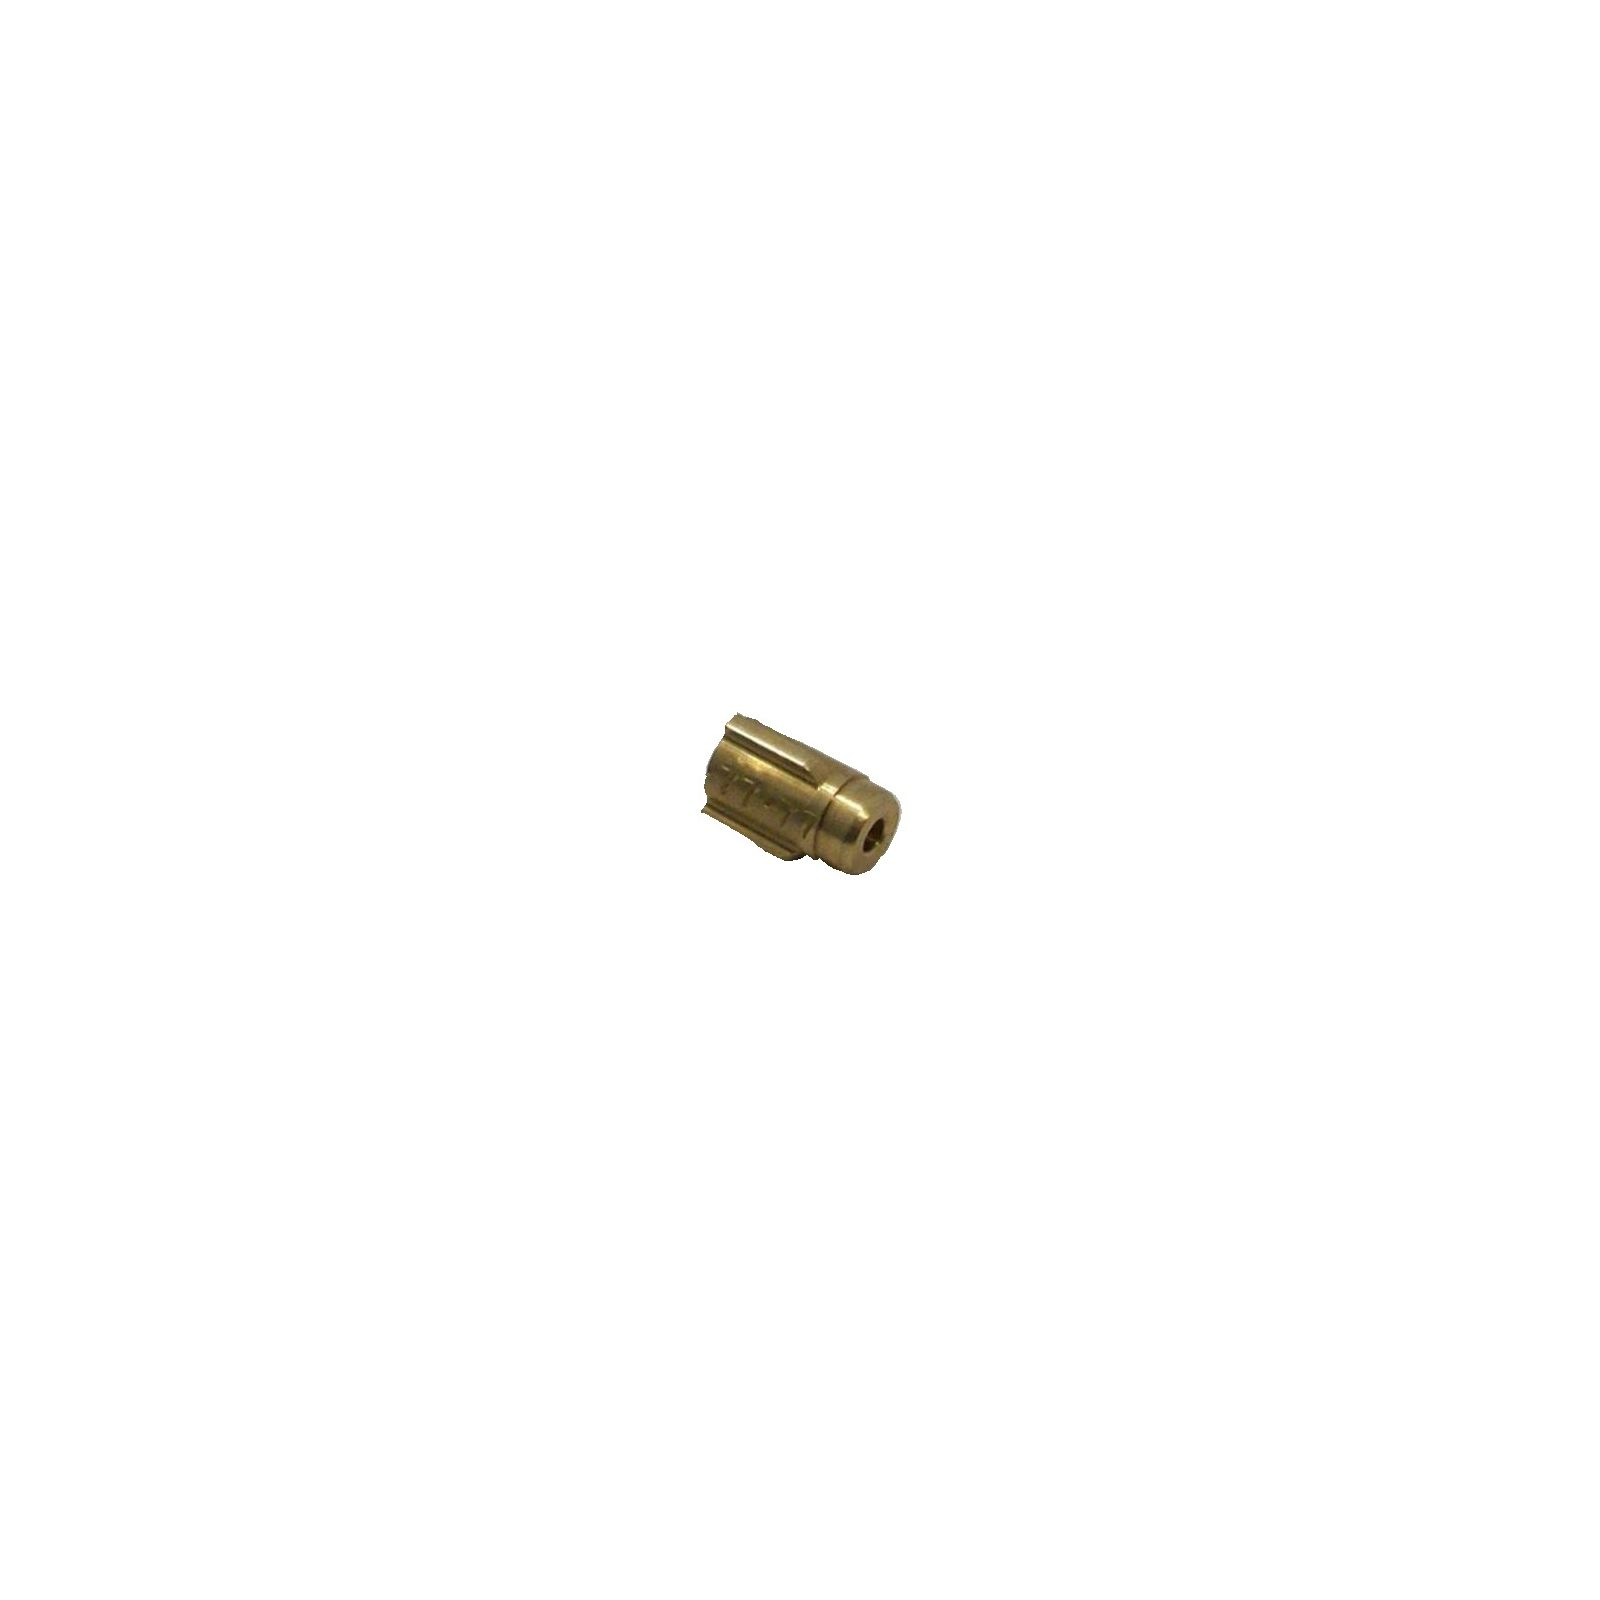 Nortek 664069 - Restrictor